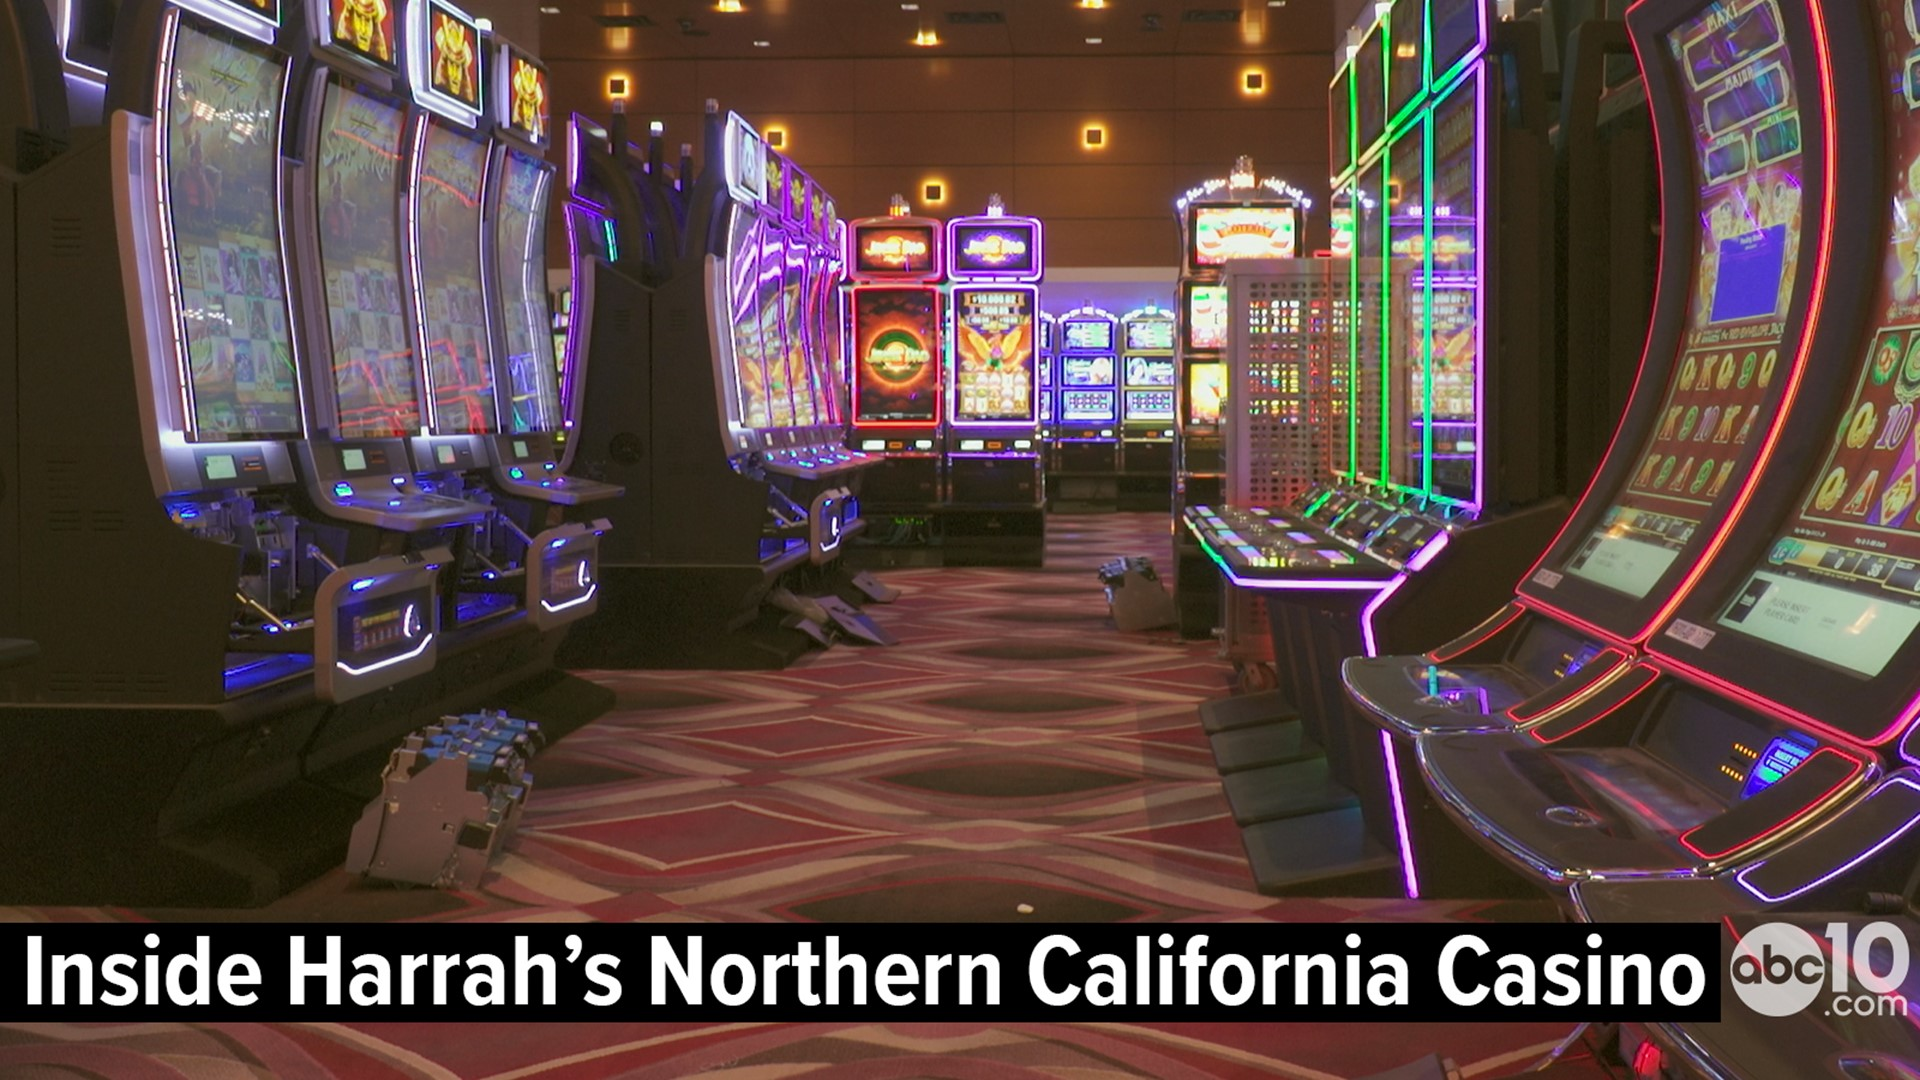 Casinos in northern california that are 18 and up south african casino